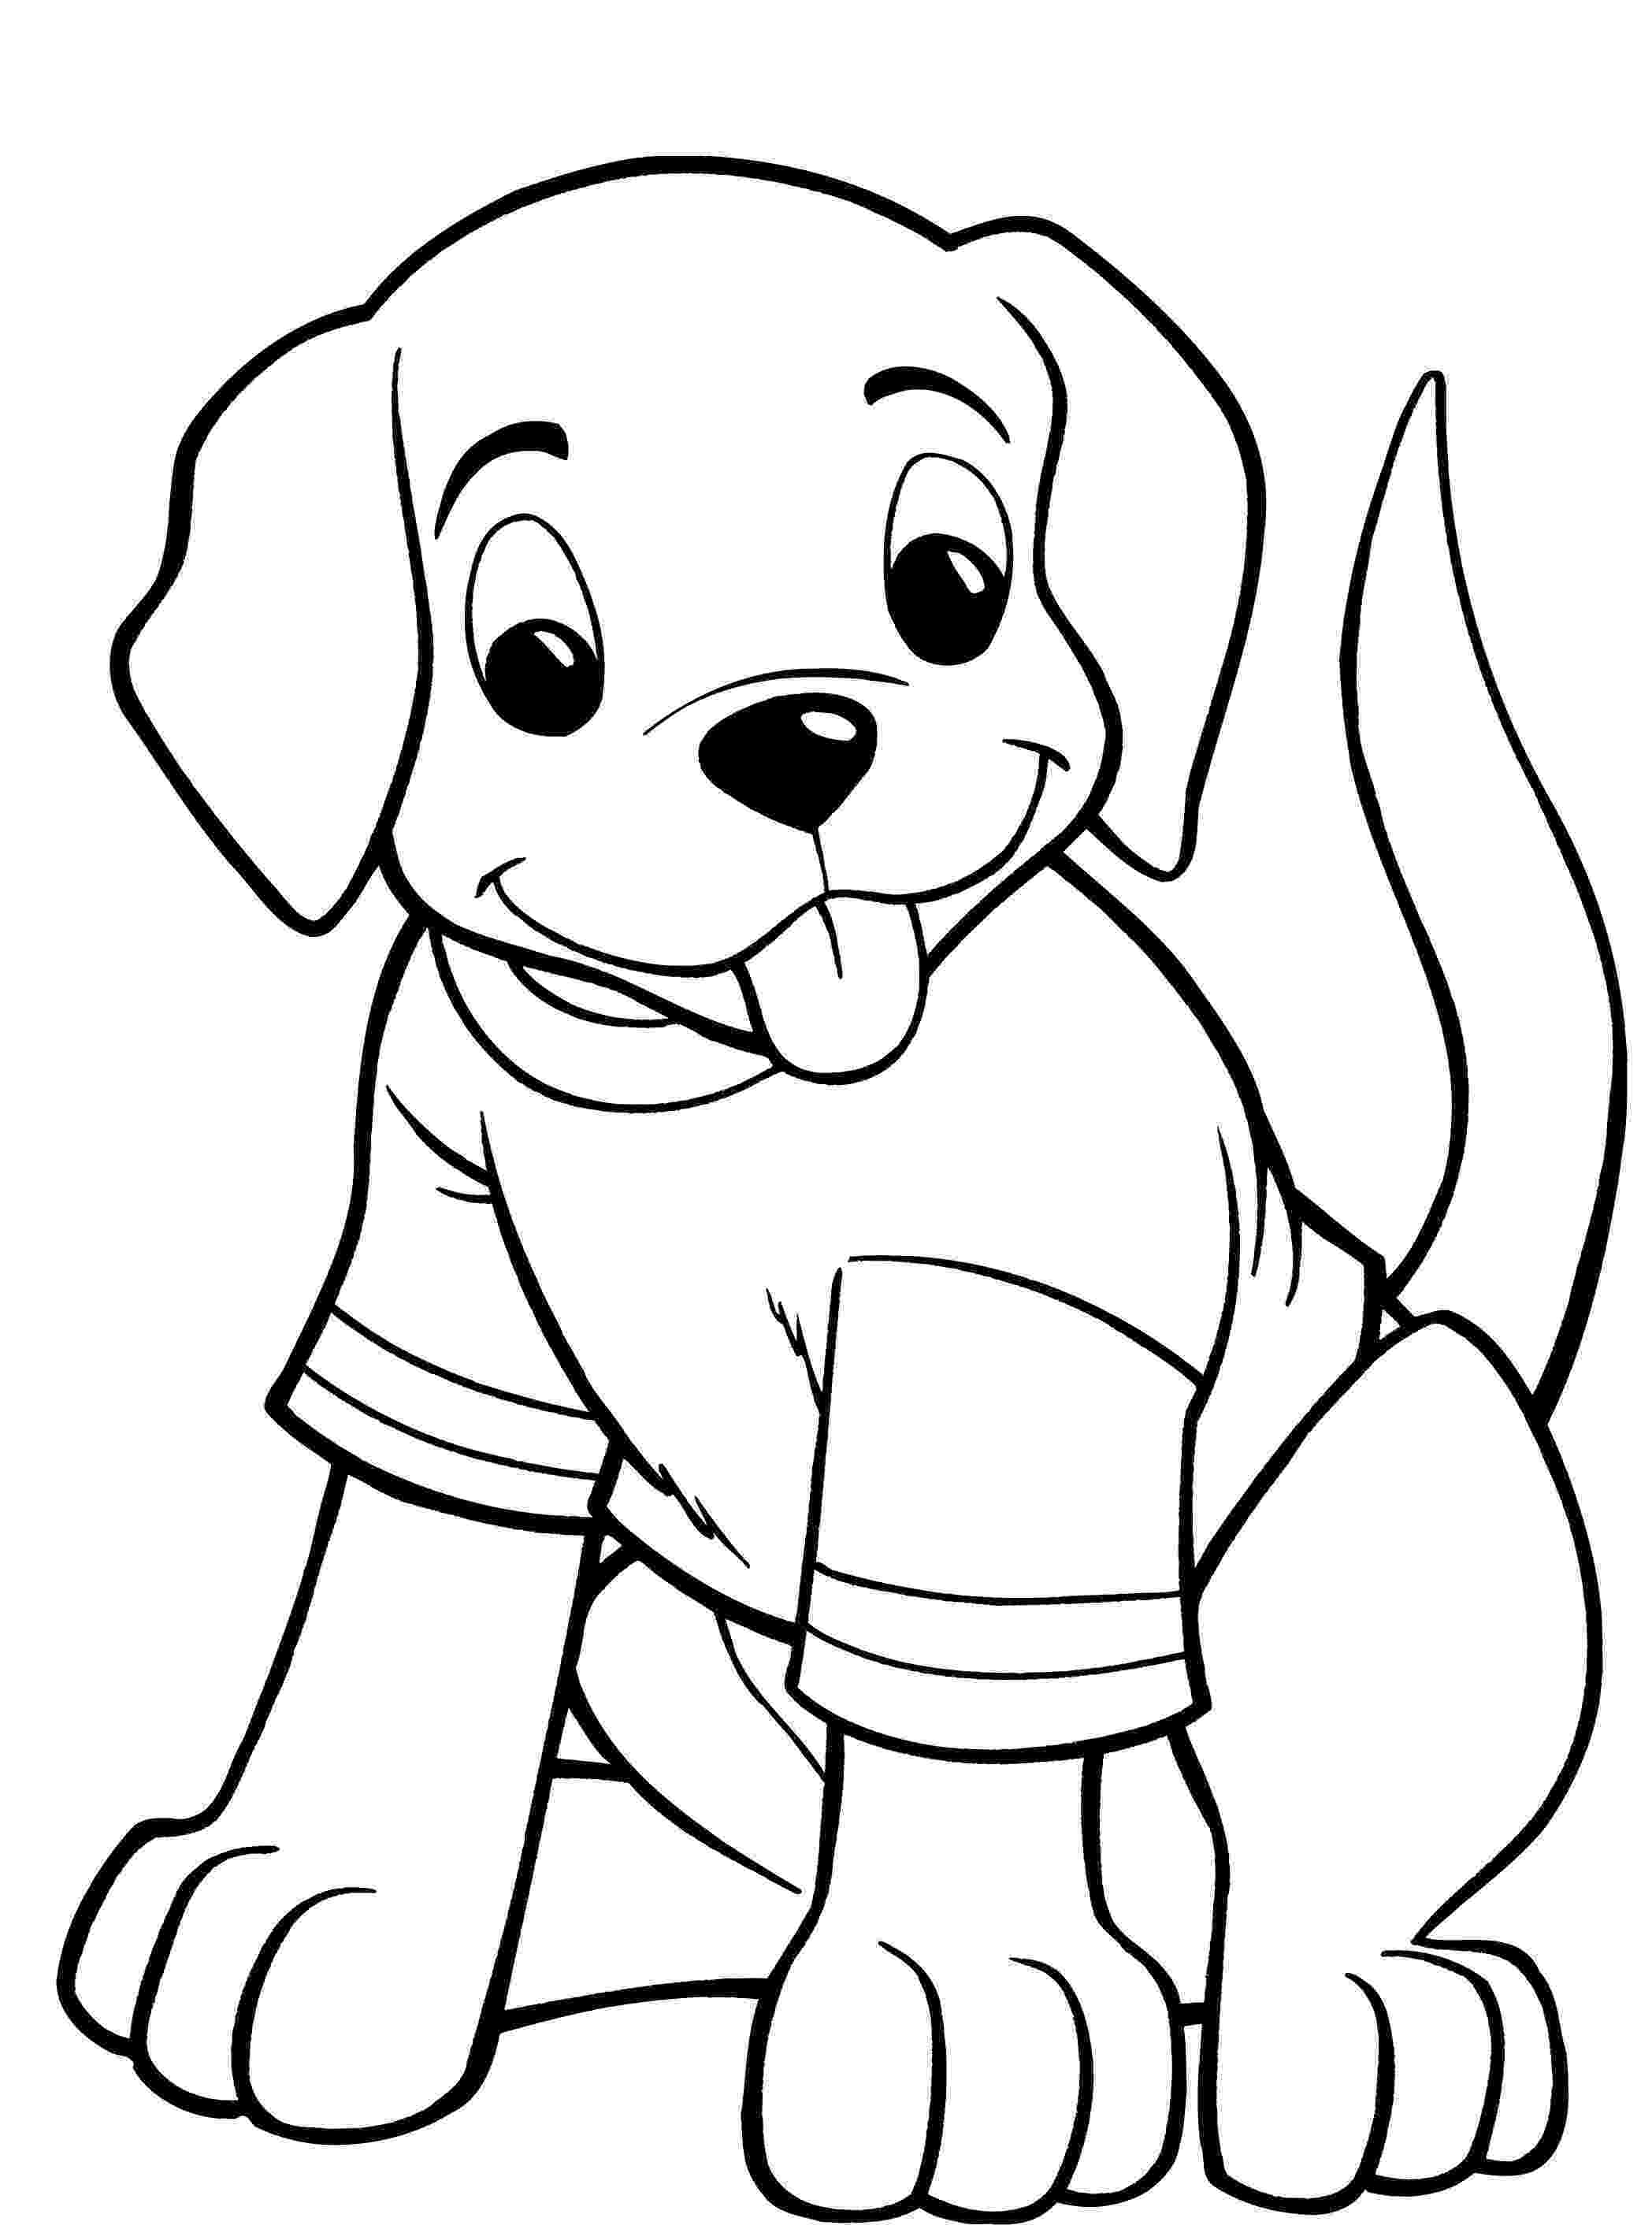 dog coloring pages for preschoolers puppy coloring pages best coloring pages for kids coloring pages for preschoolers dog